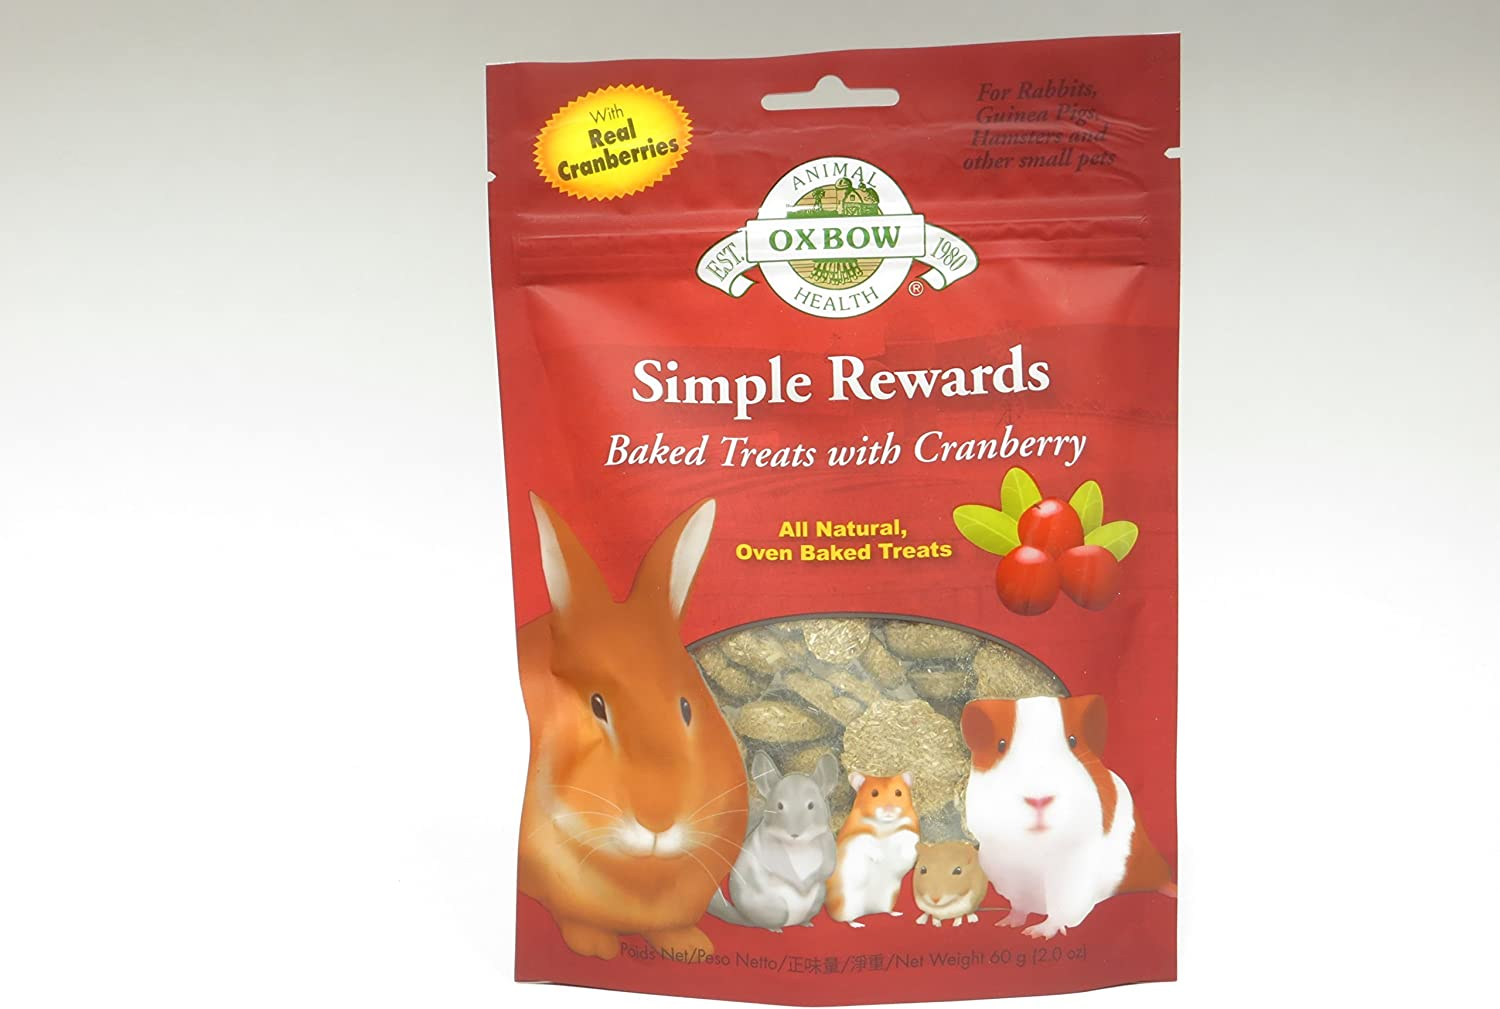 New Oxbow Simple Rewards All Natural Oven Baked Treats with Cranberry and Timothy Grass